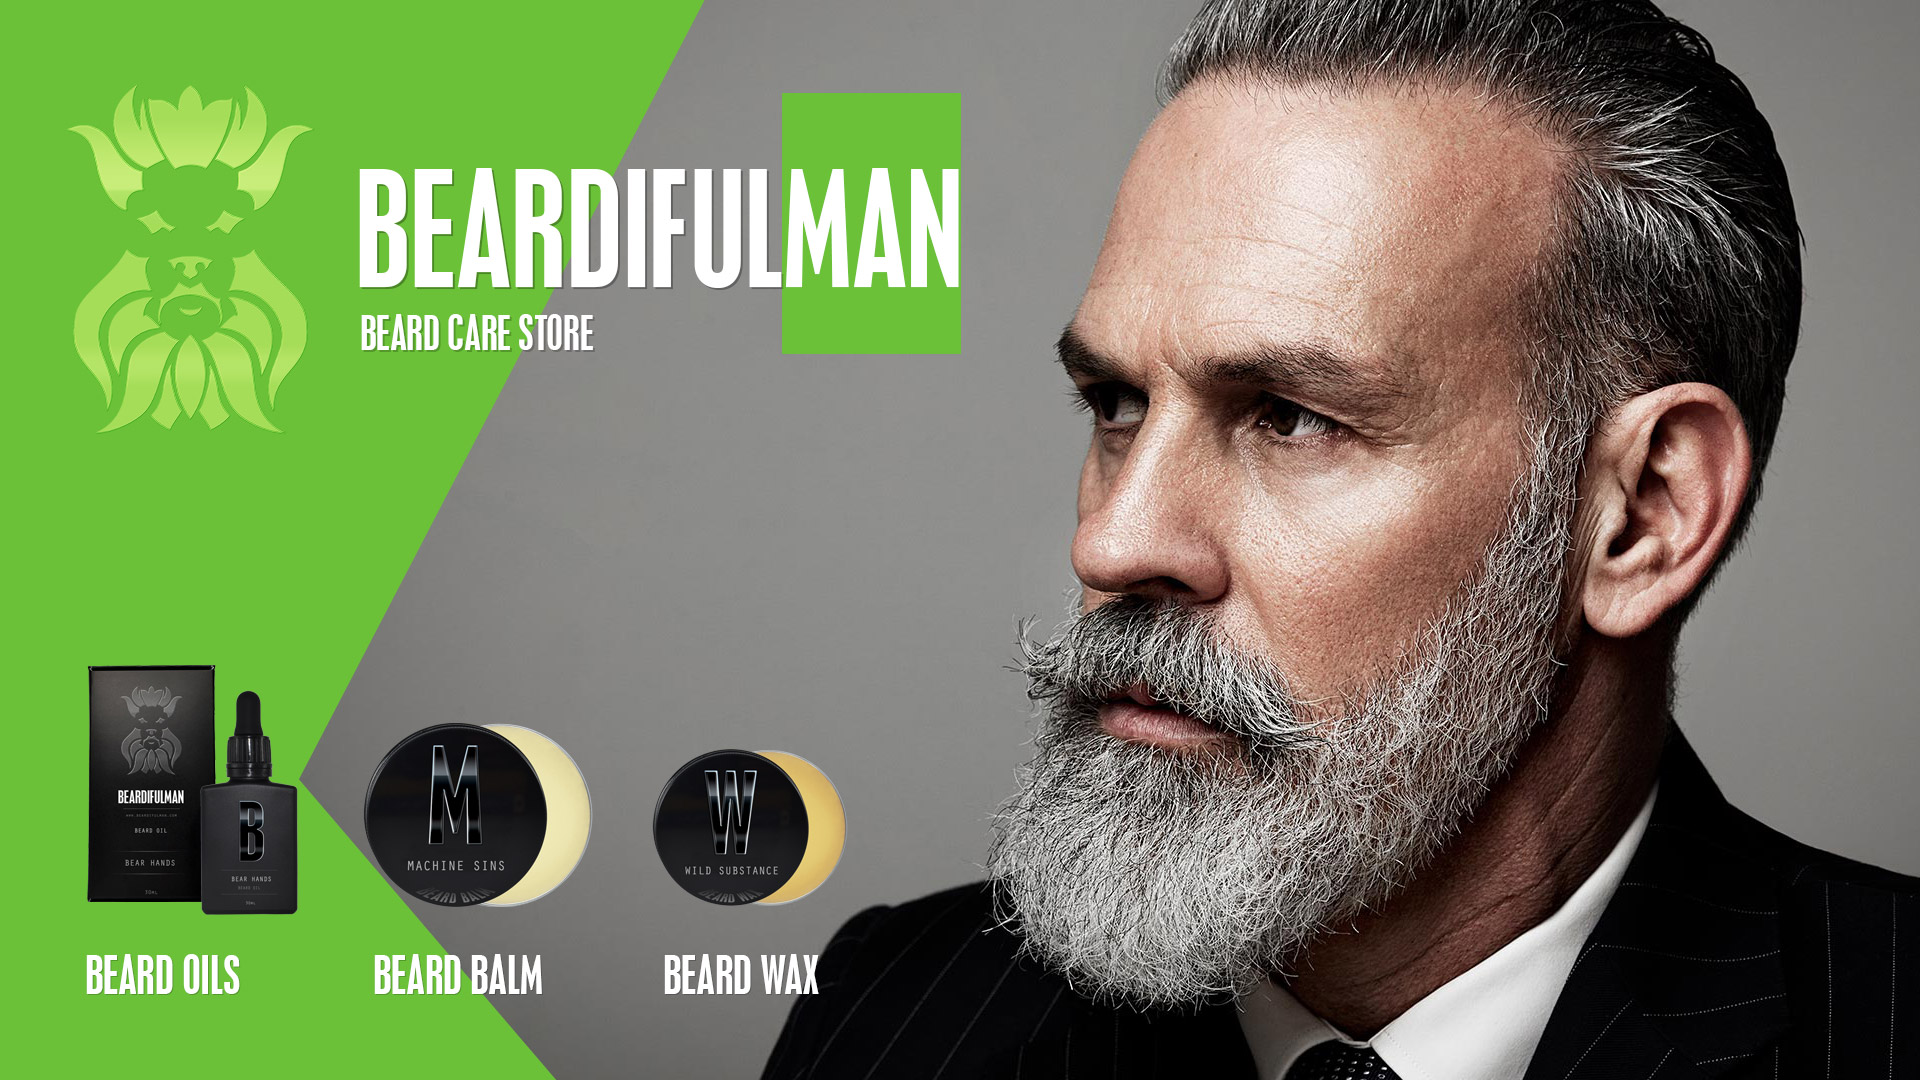 Contacting BeardifulmanFor your convenience we have different departments that deal with different things, please send your email to the right place and you will be far happier.